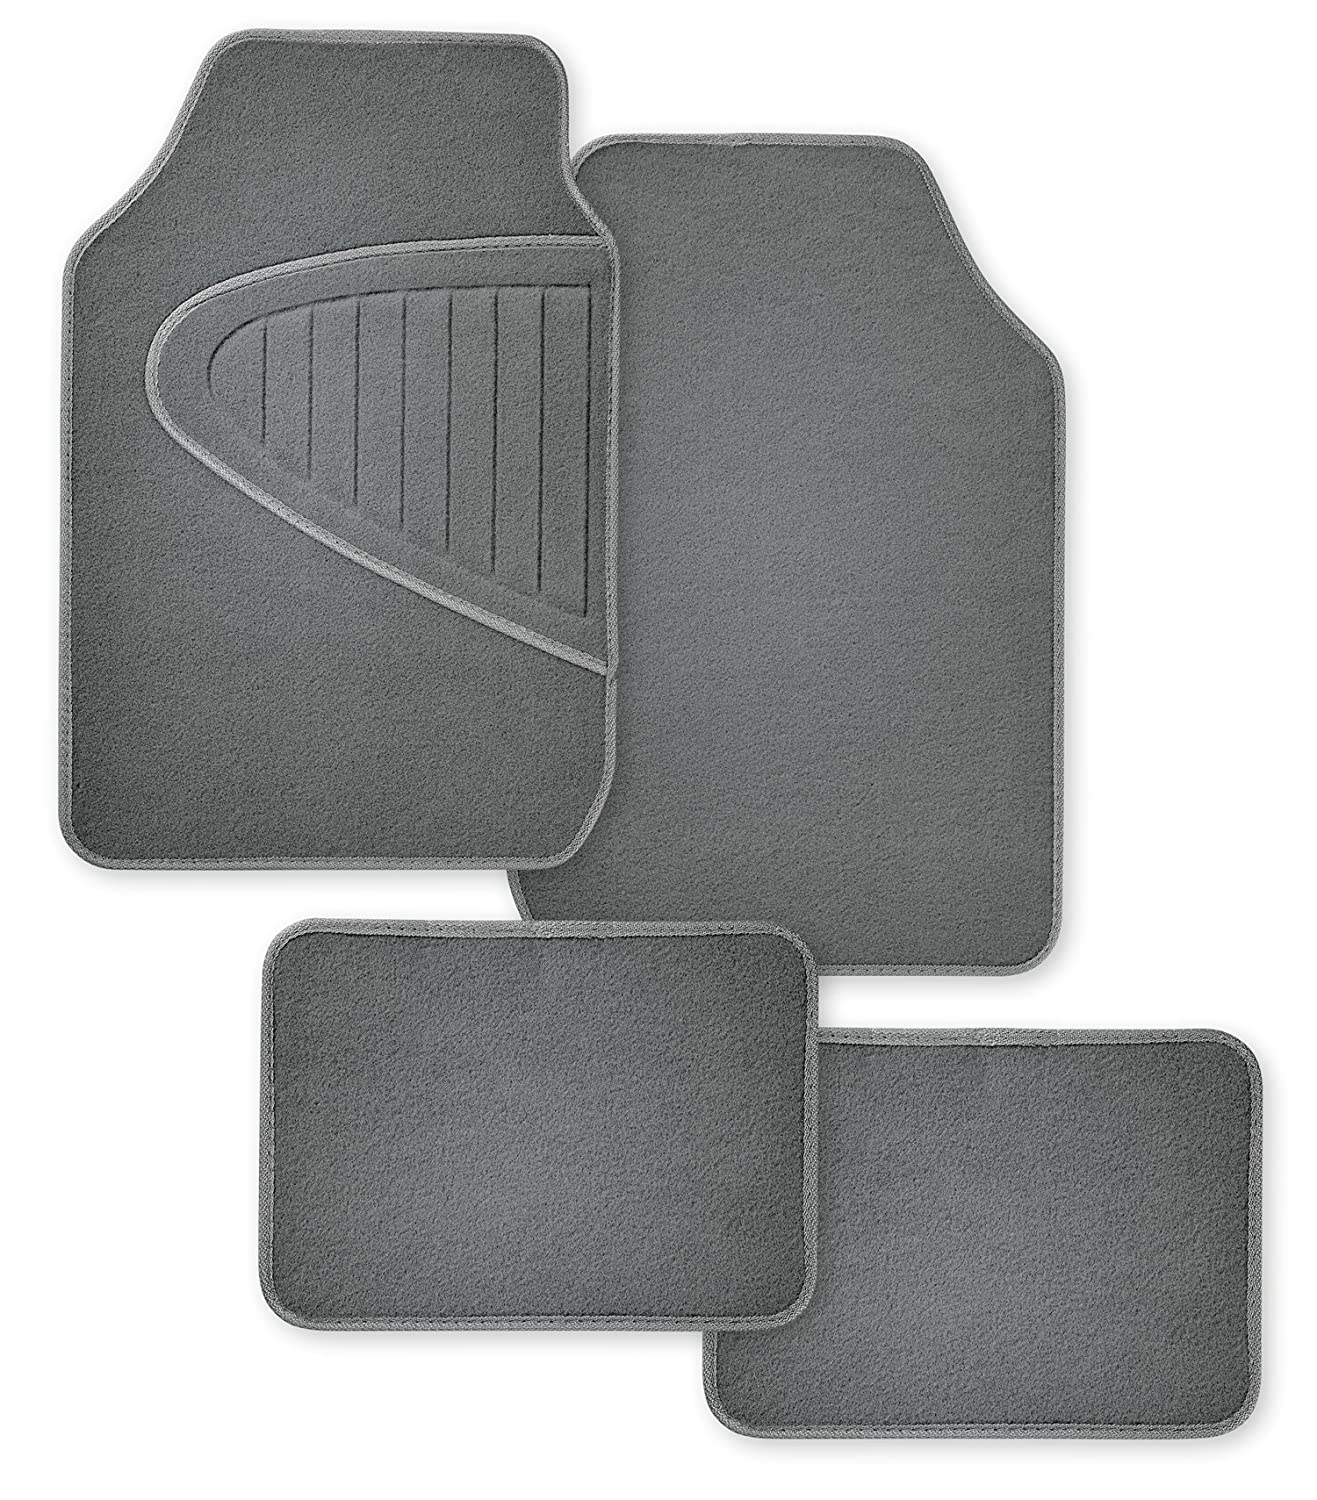 Kraco CN140475 Tan ECO-Deluxe Recycled Universal Fit Gray Mat 4pcs Set with Embossed Protective Carpet Driver Side Heel Pad